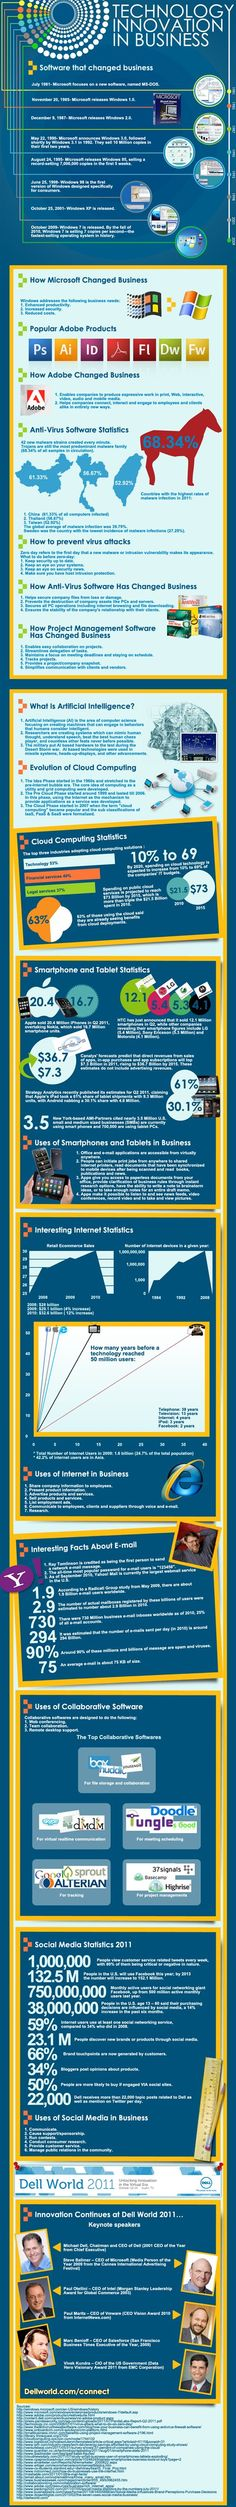 IT innovation that changed the game [Graphic]